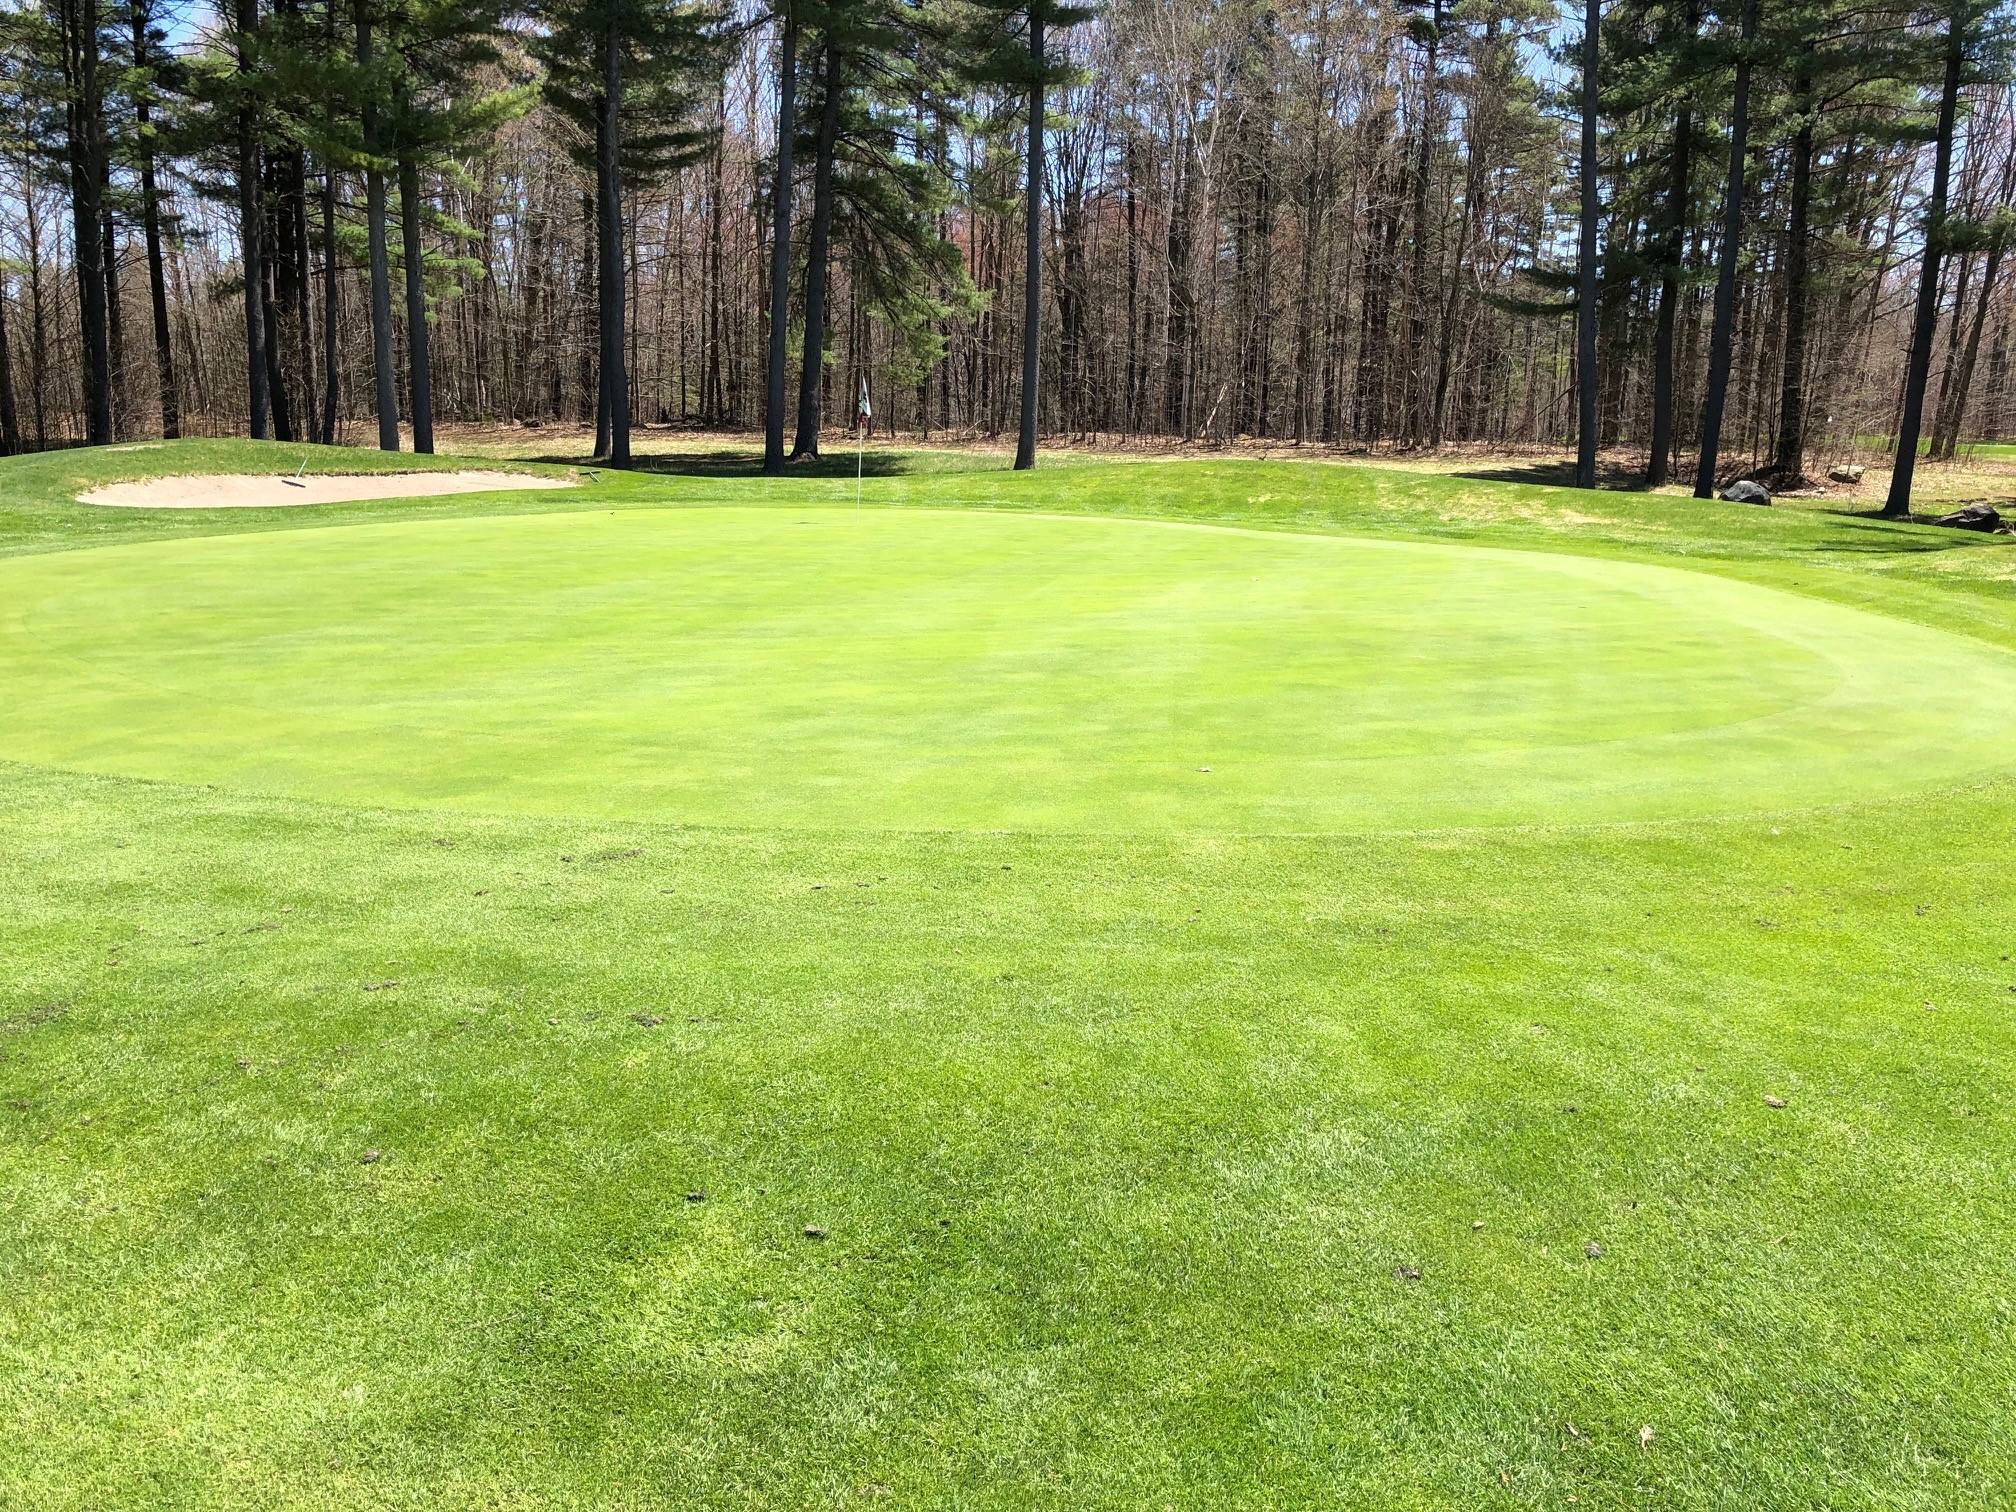 4th hole green - photo taken on May 8, 2019